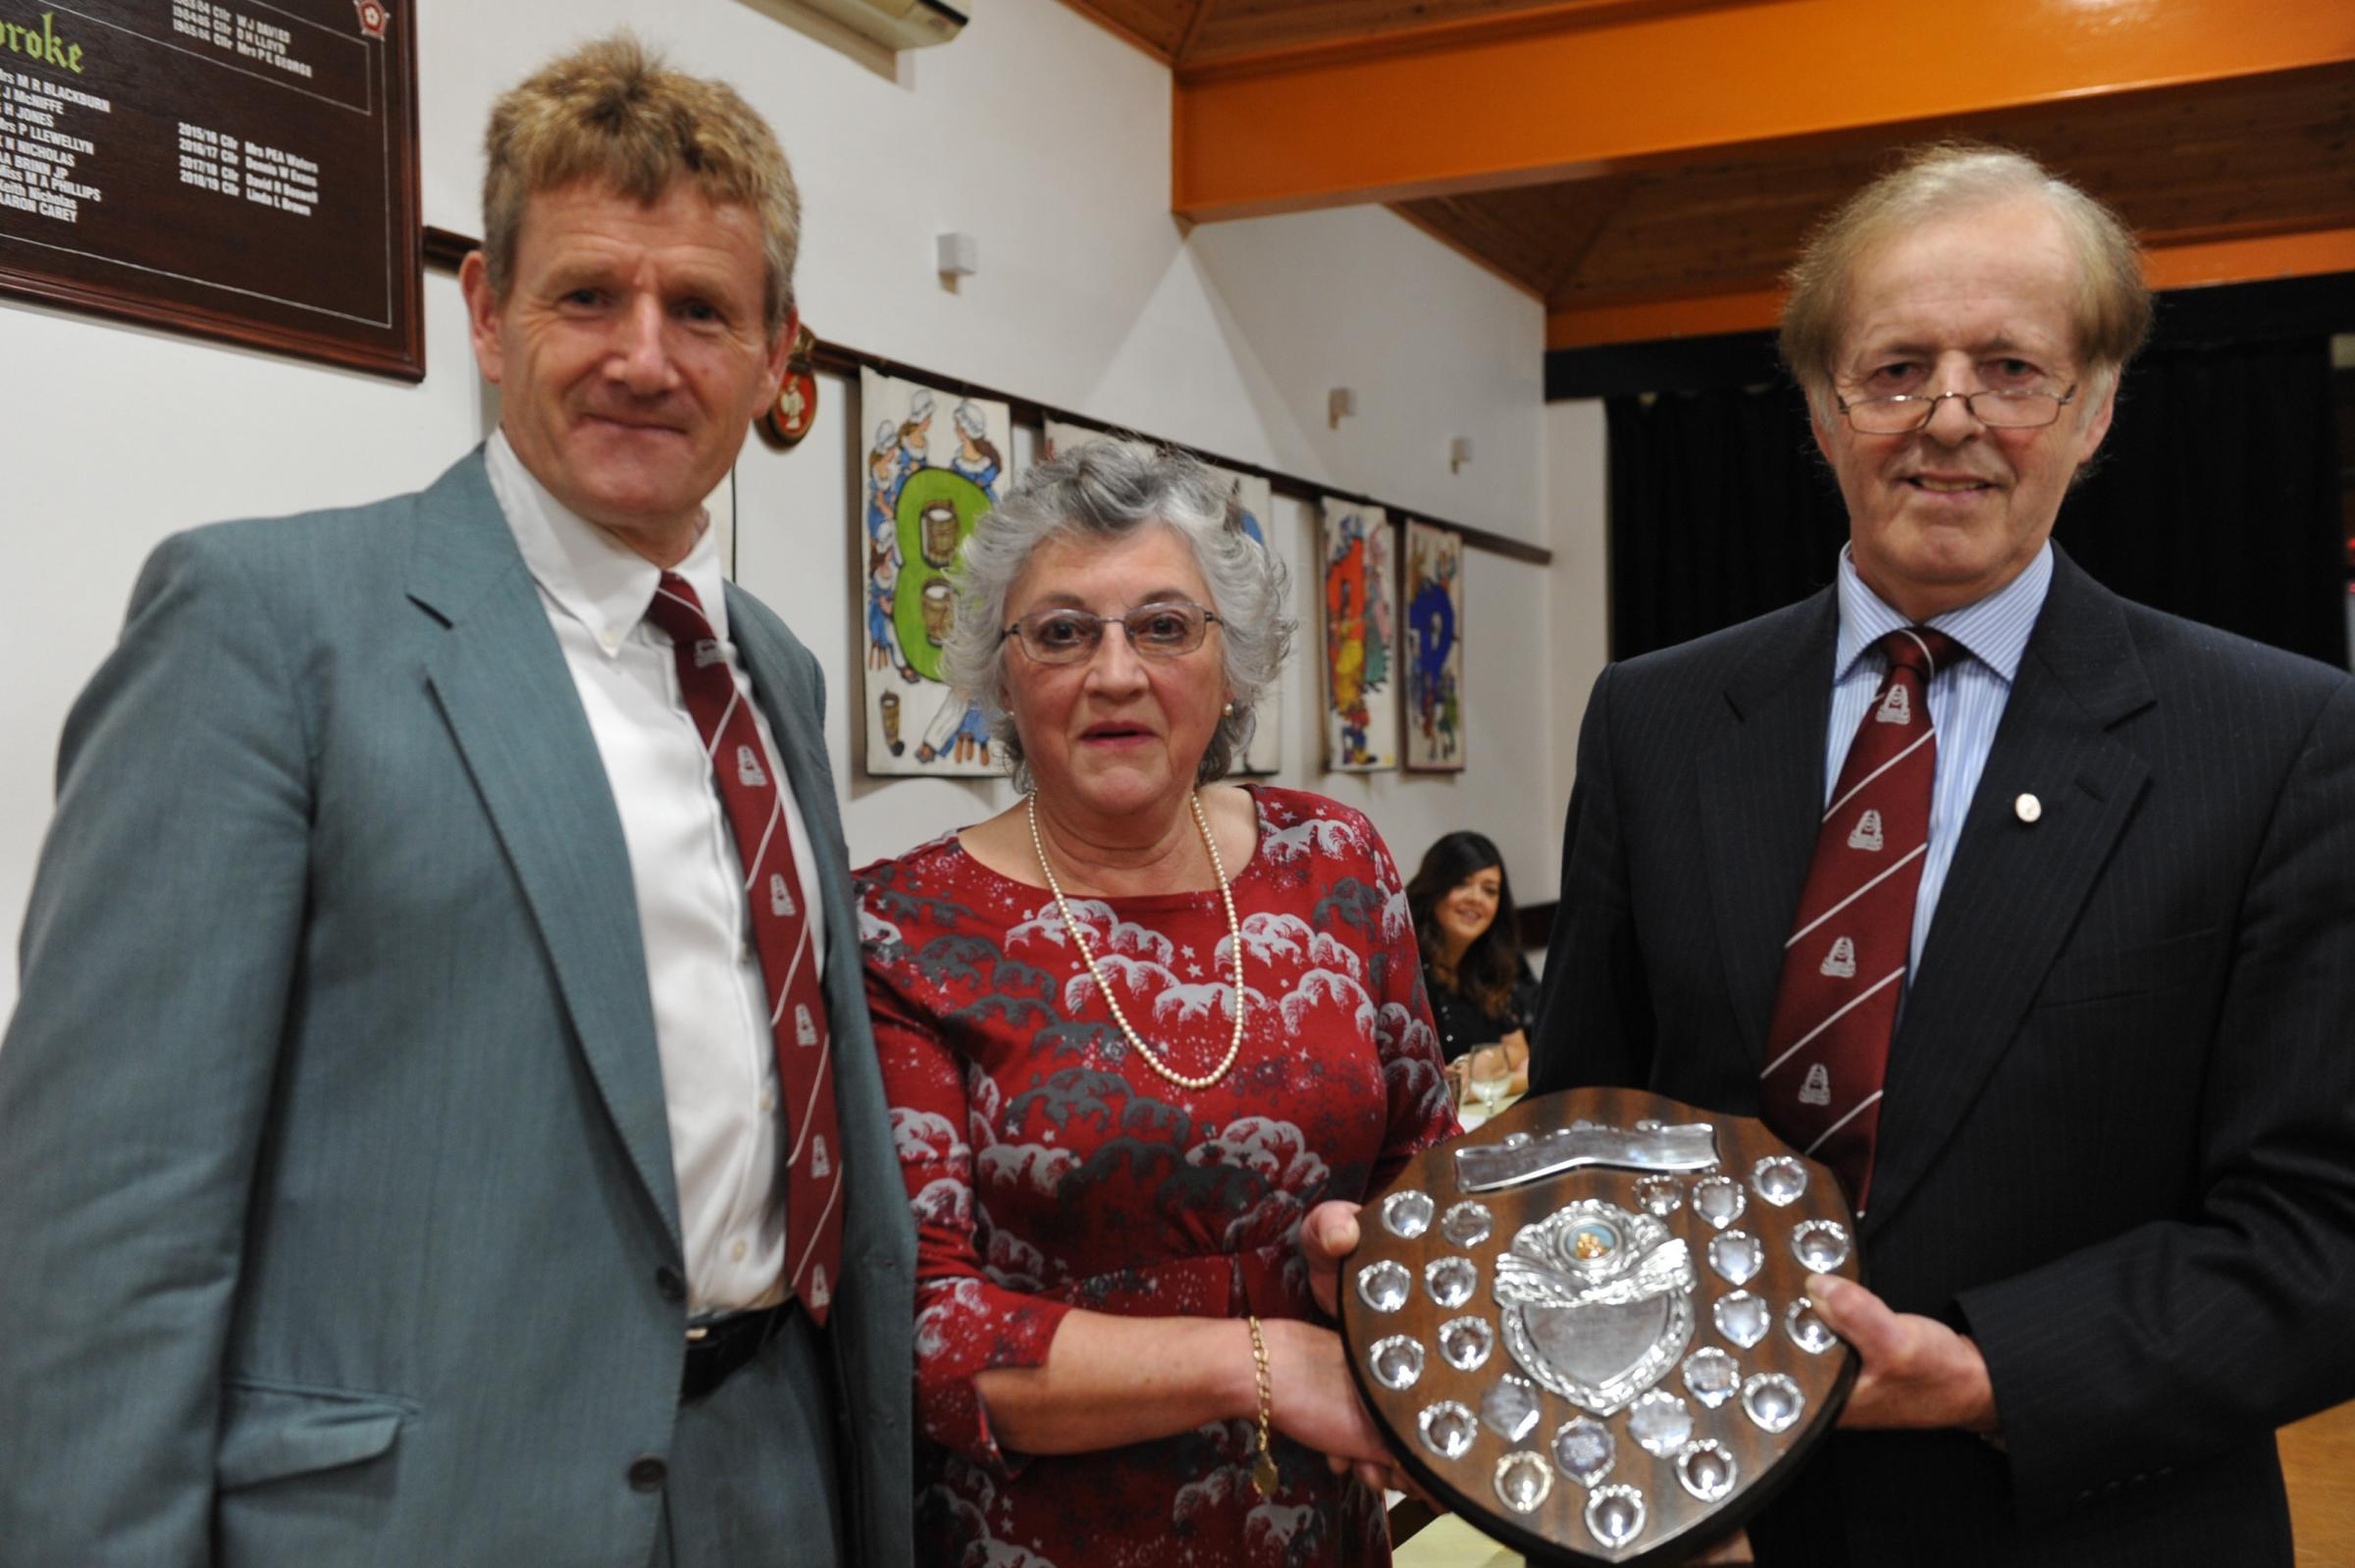 The Pembroke Farmers' Club Services to Agriculture award for 2018 has been presented to Elizabeth Minchin, the Club's secretary for the last 19 years.